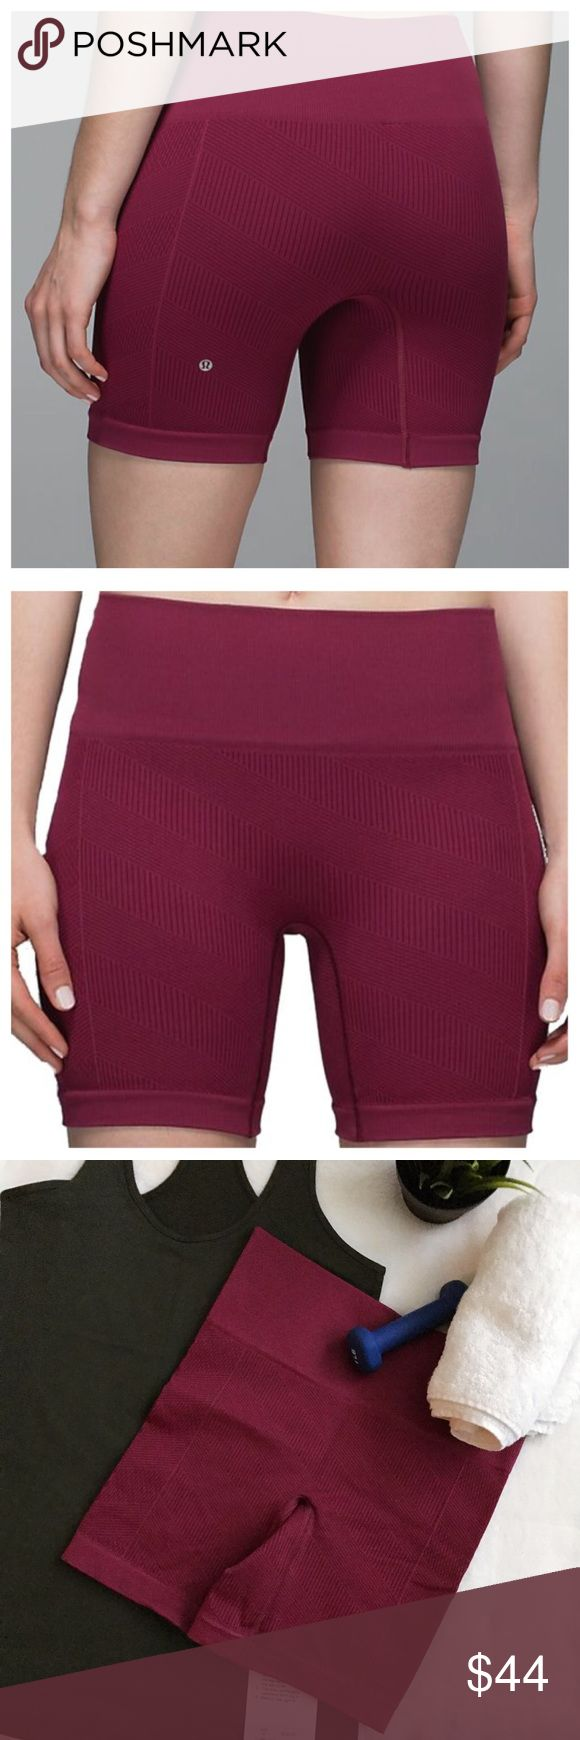 Lululemon Sculpt Shorts size 4 NWT burgundy First 2 images are stock All other images are of actual shorts for sale *price firm unless bundled 🚫trades 🚫modeling requests  🚫🅿️🅿️ 👍🏻Reasonable offers welcome! lululemon athletica Shorts